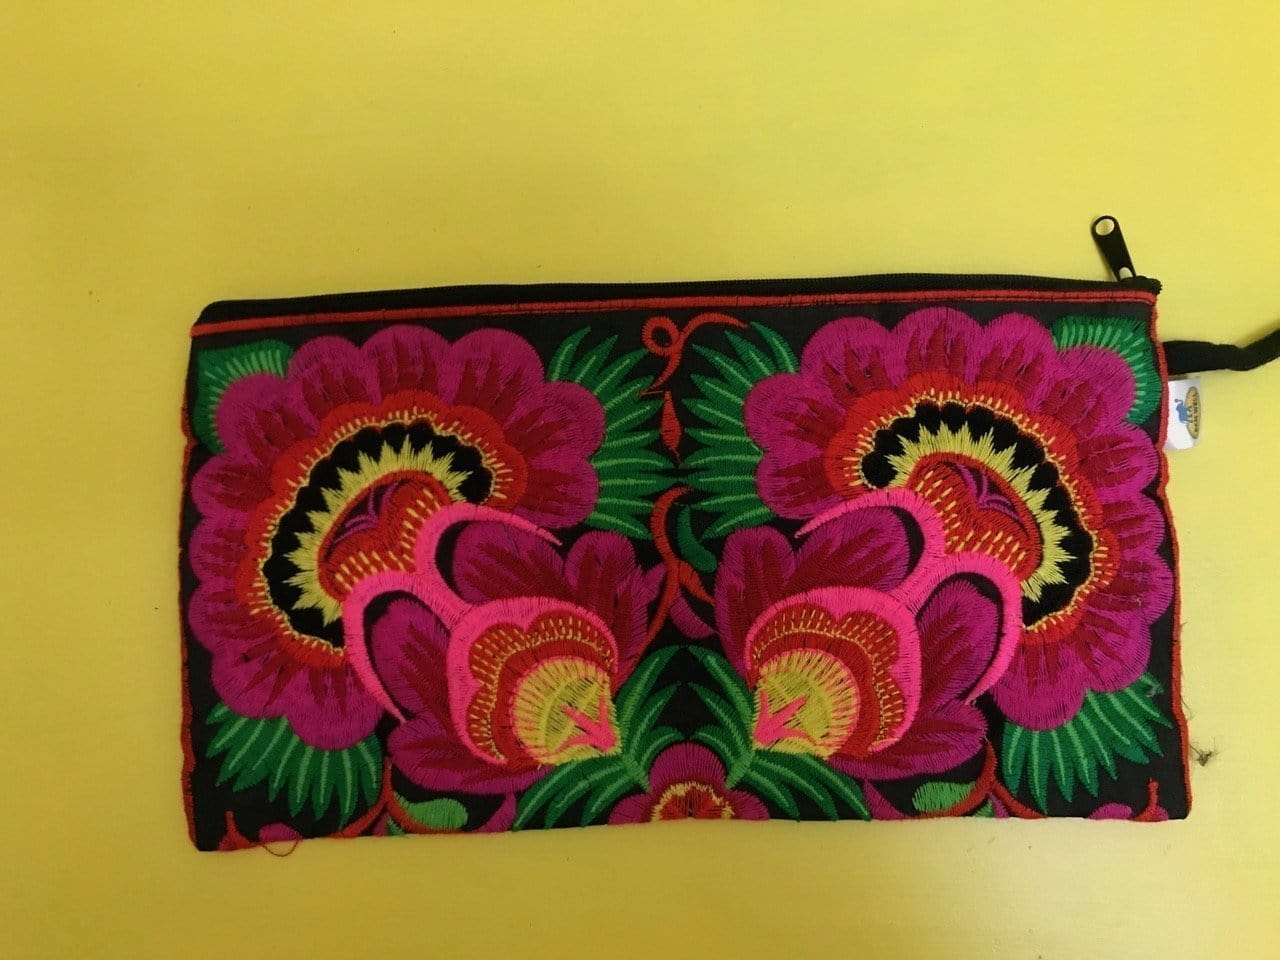 Hmong embroidered Clutch bag